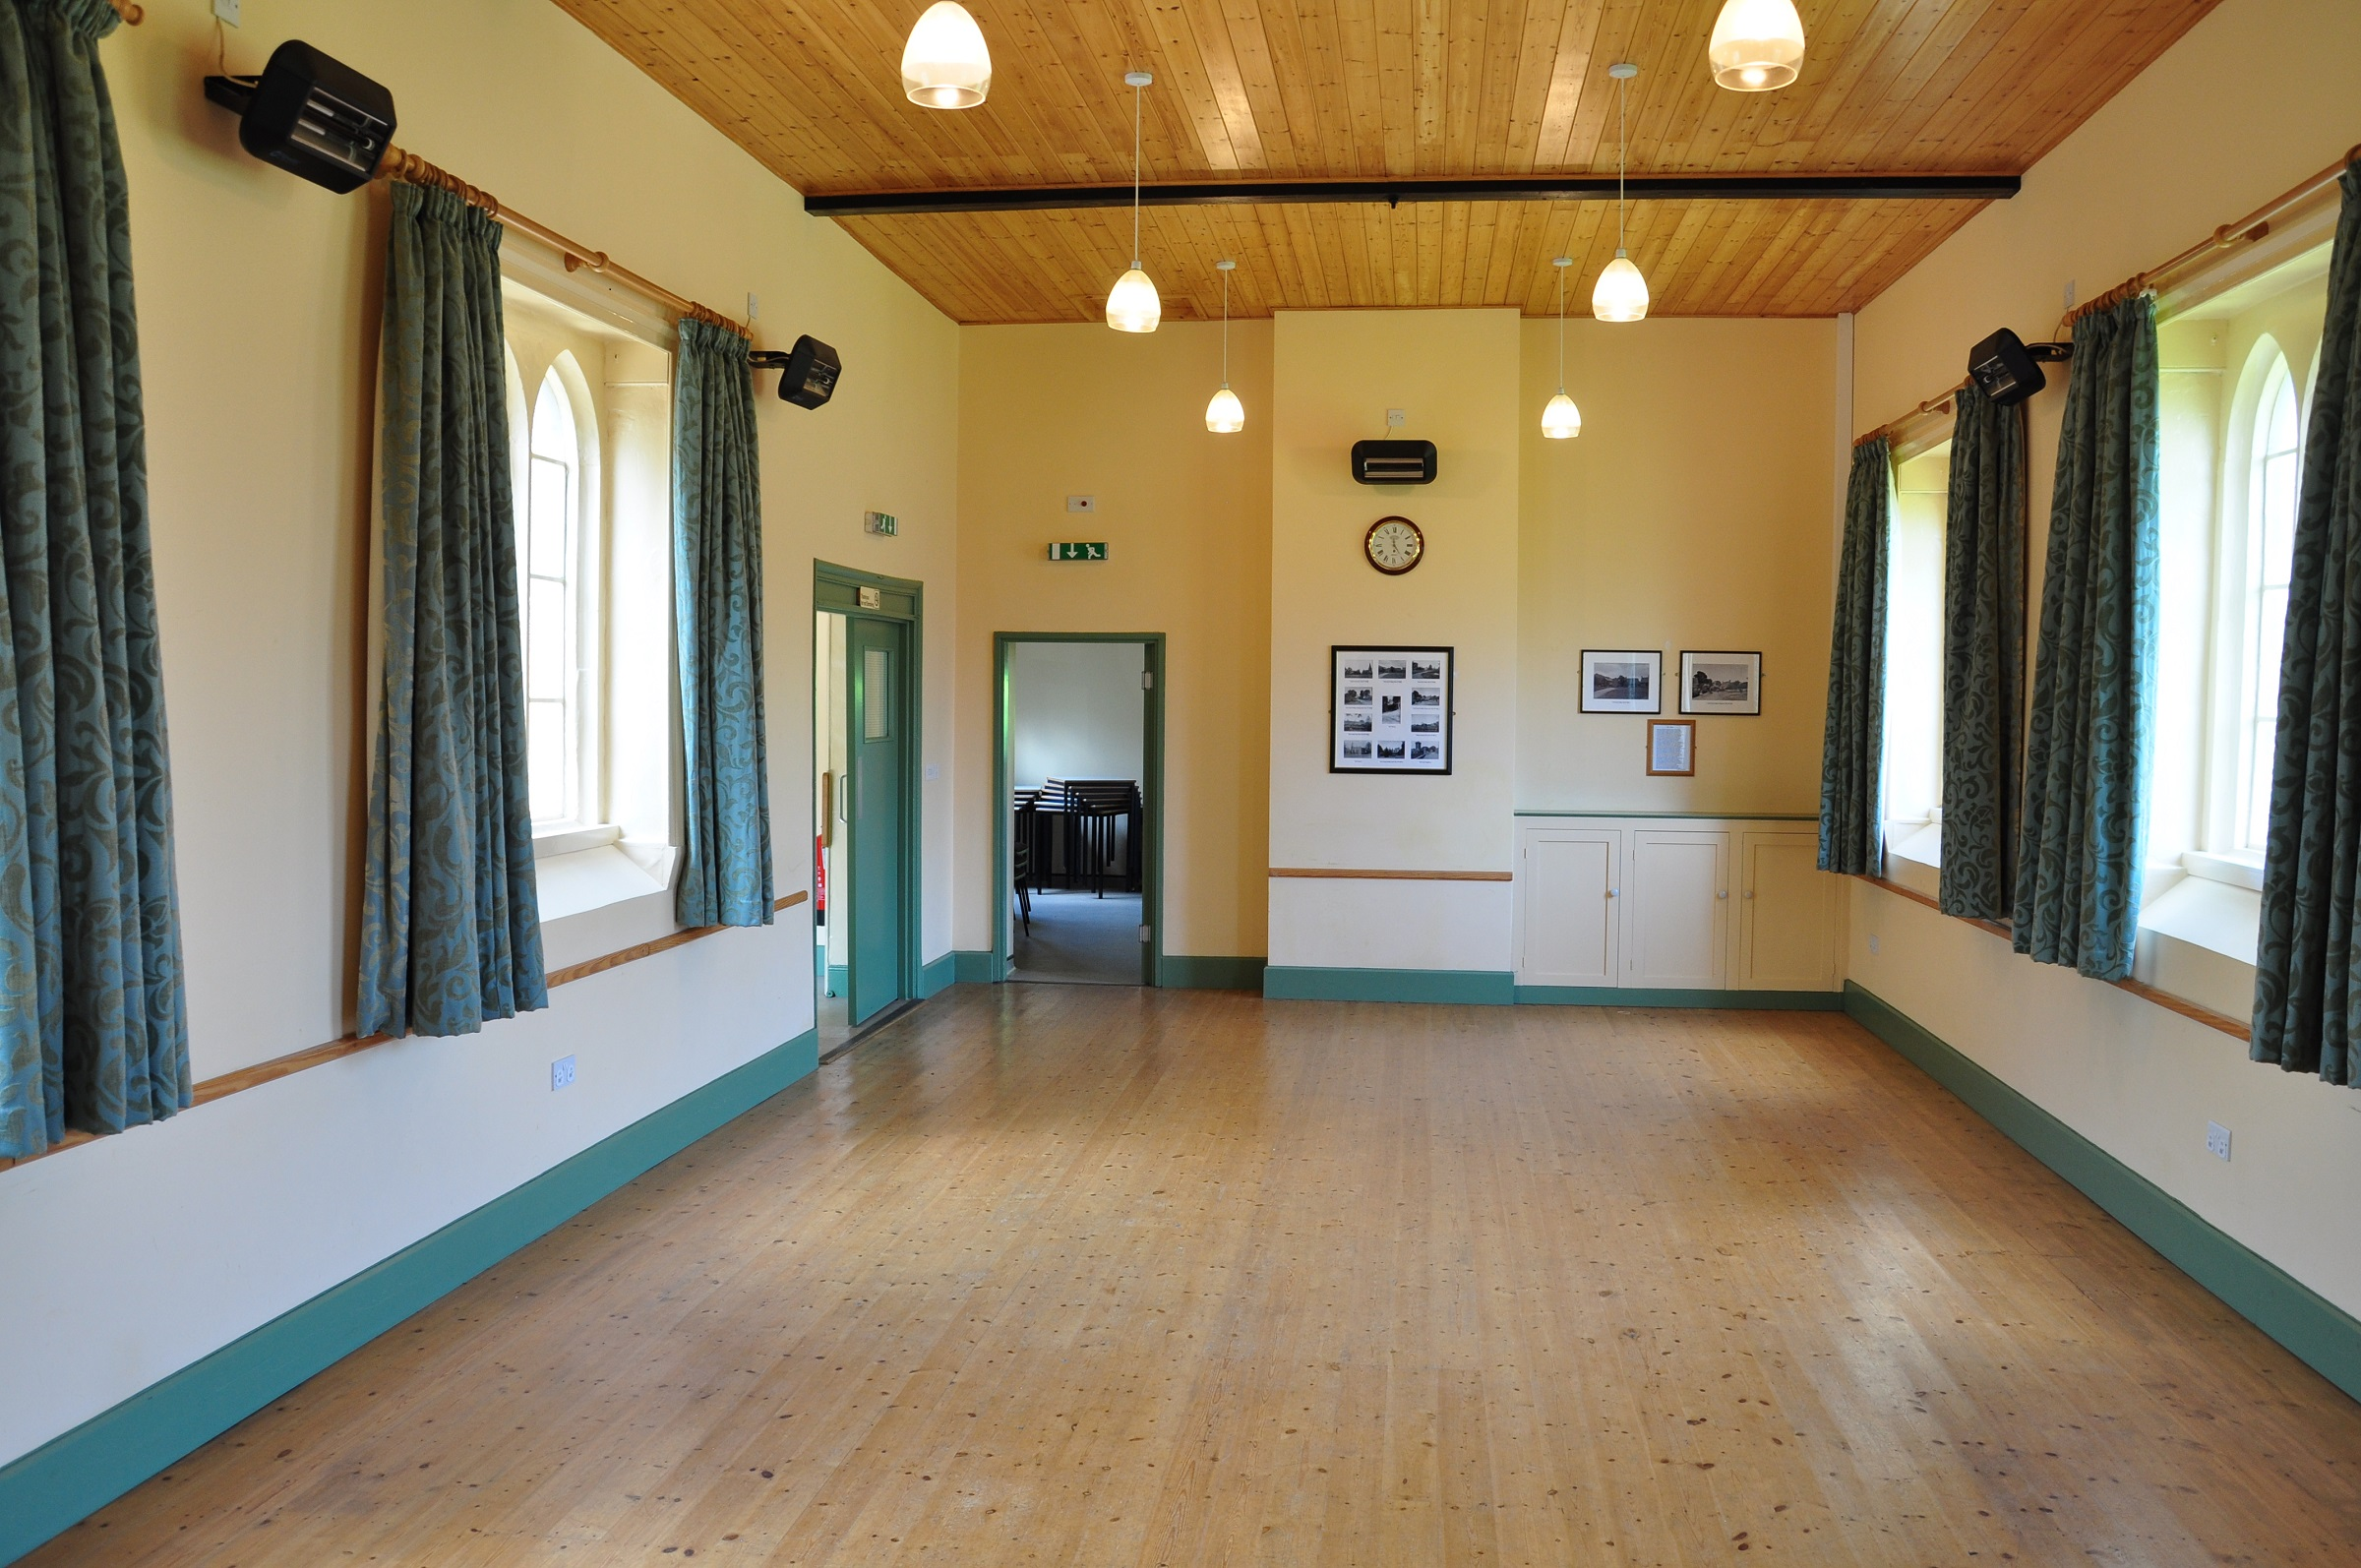 Village Hall Interior